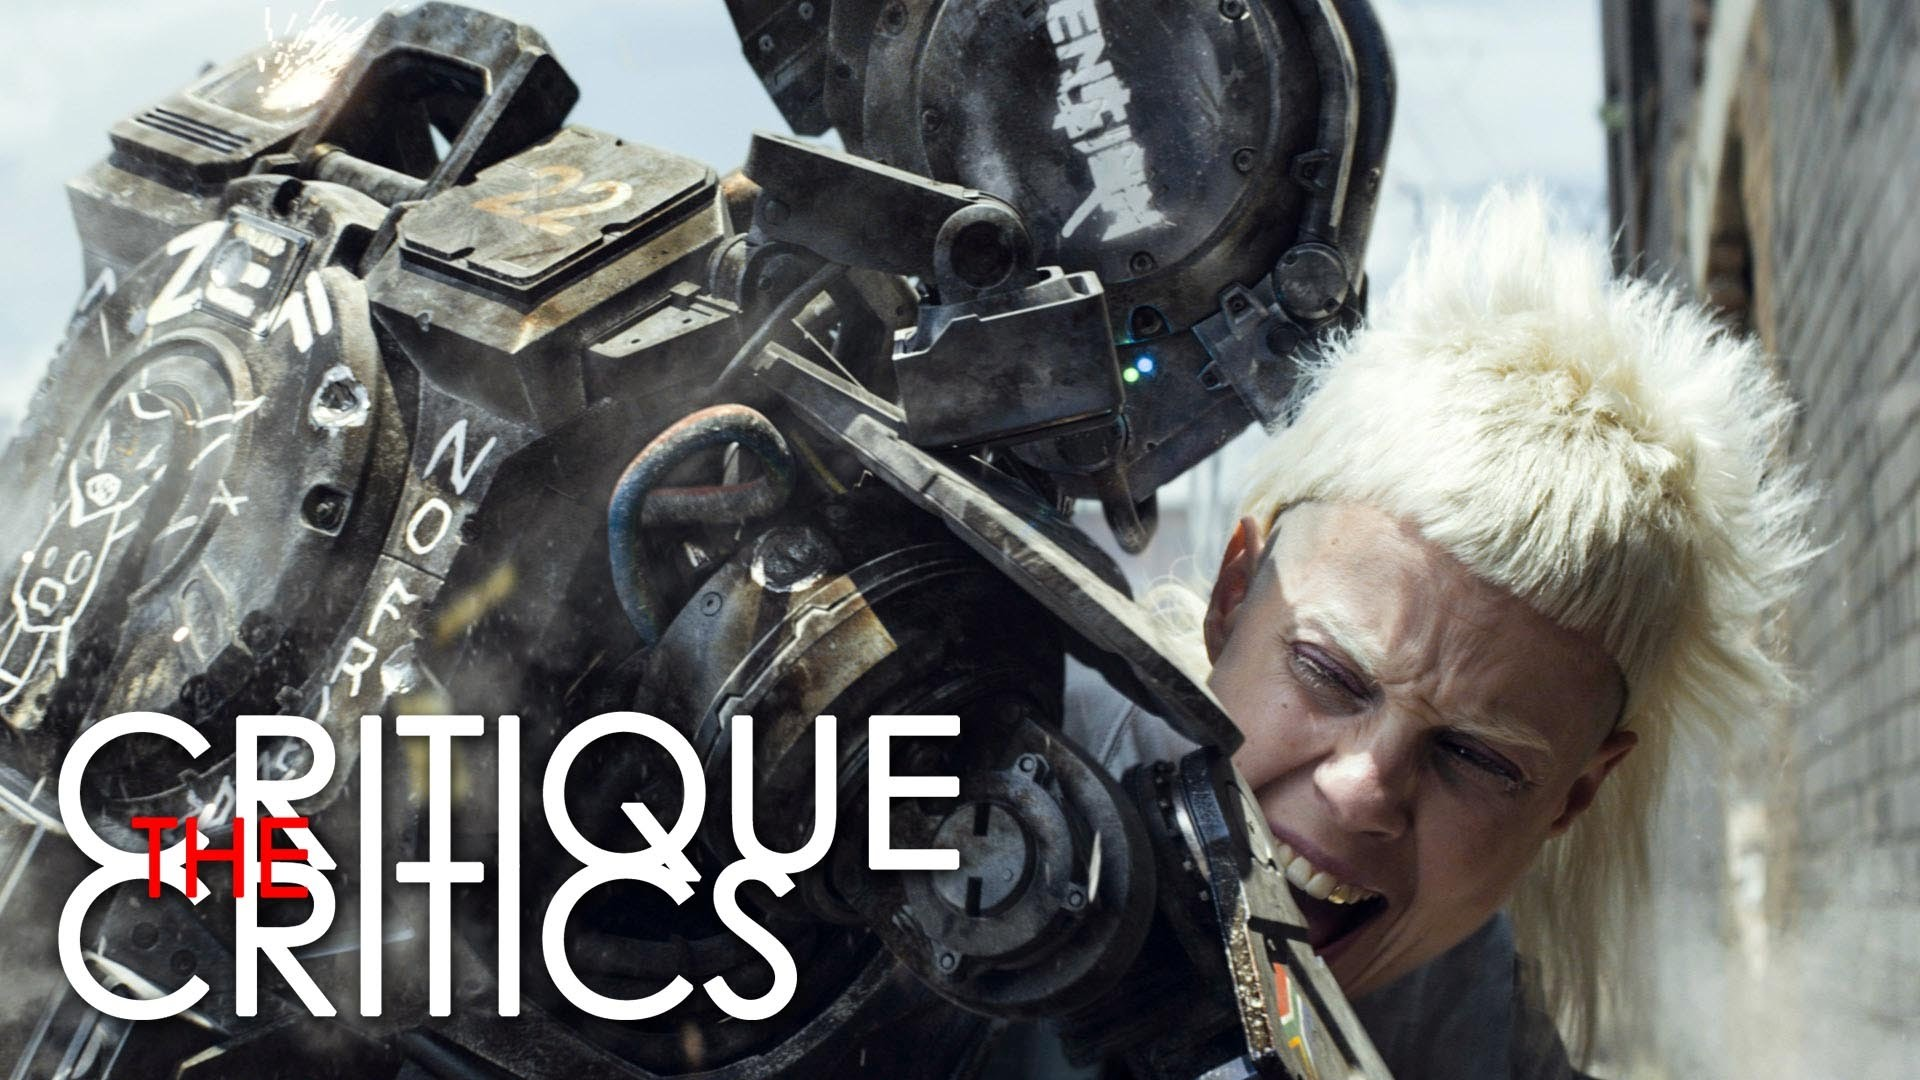 1920x1080 Blomkamp attempts to direct Die Antwoord in CHAPPiE #22